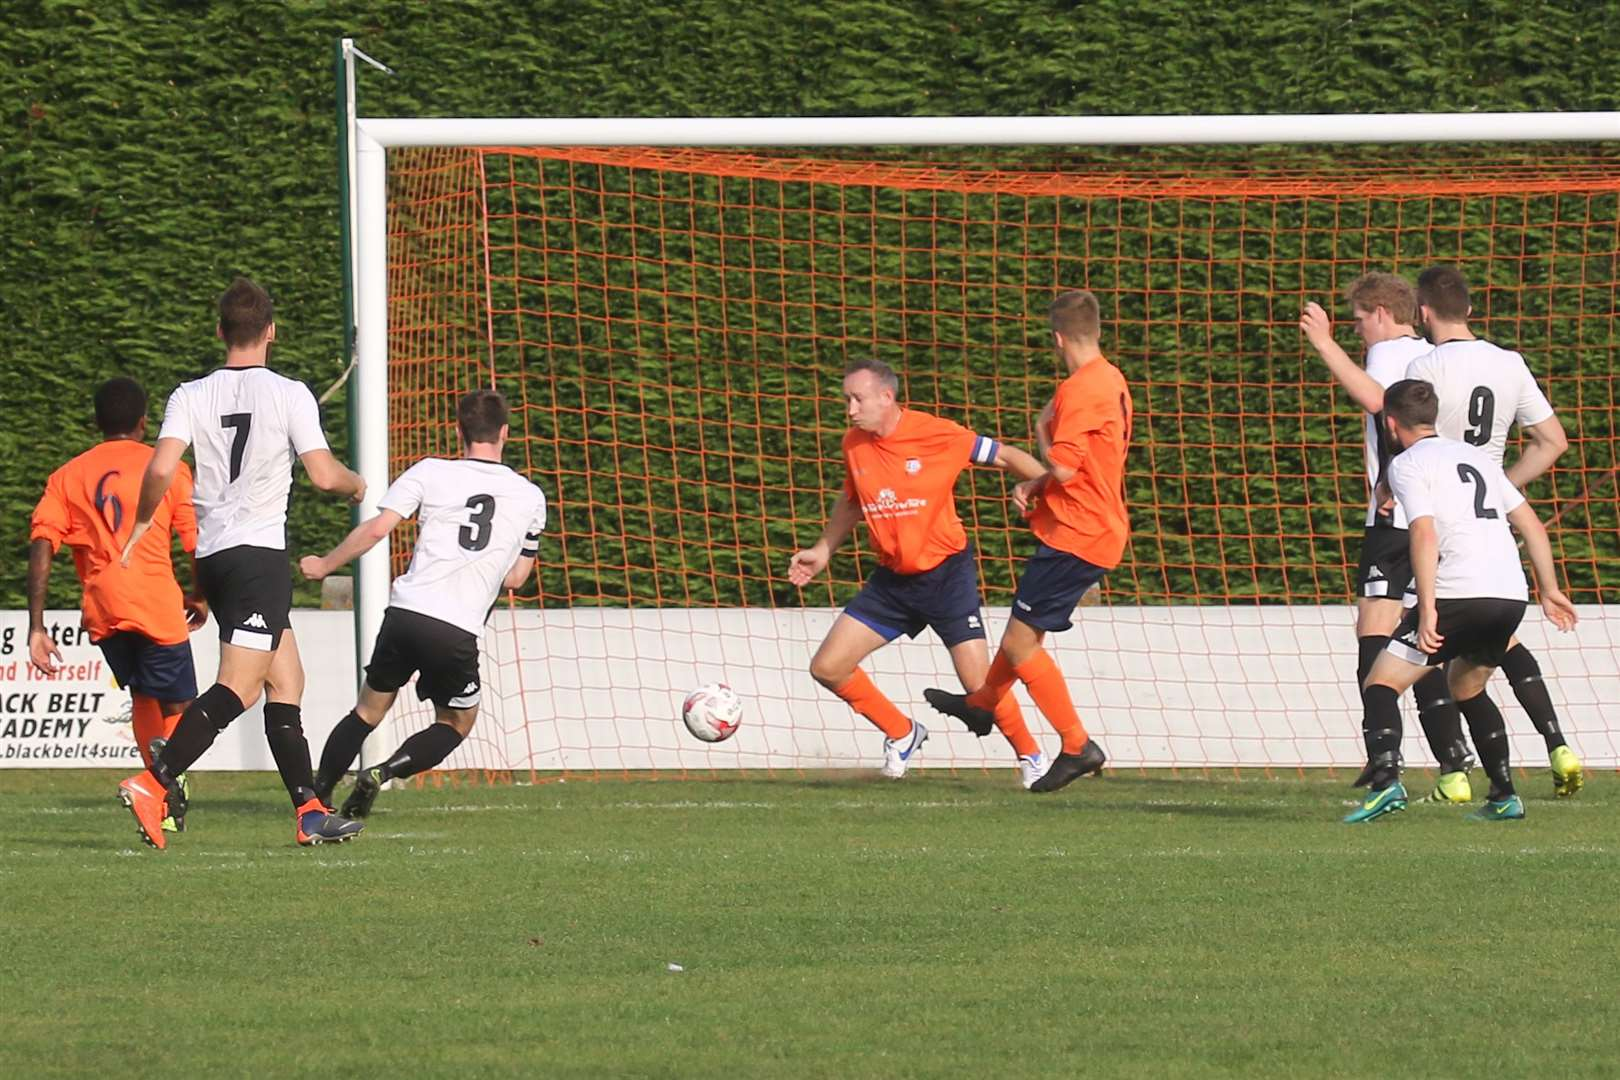 MDEP-12-10-2018-001 sp Harleston Captain No 3 Jake Imrie fires home to score the winning goal.. (13068001)